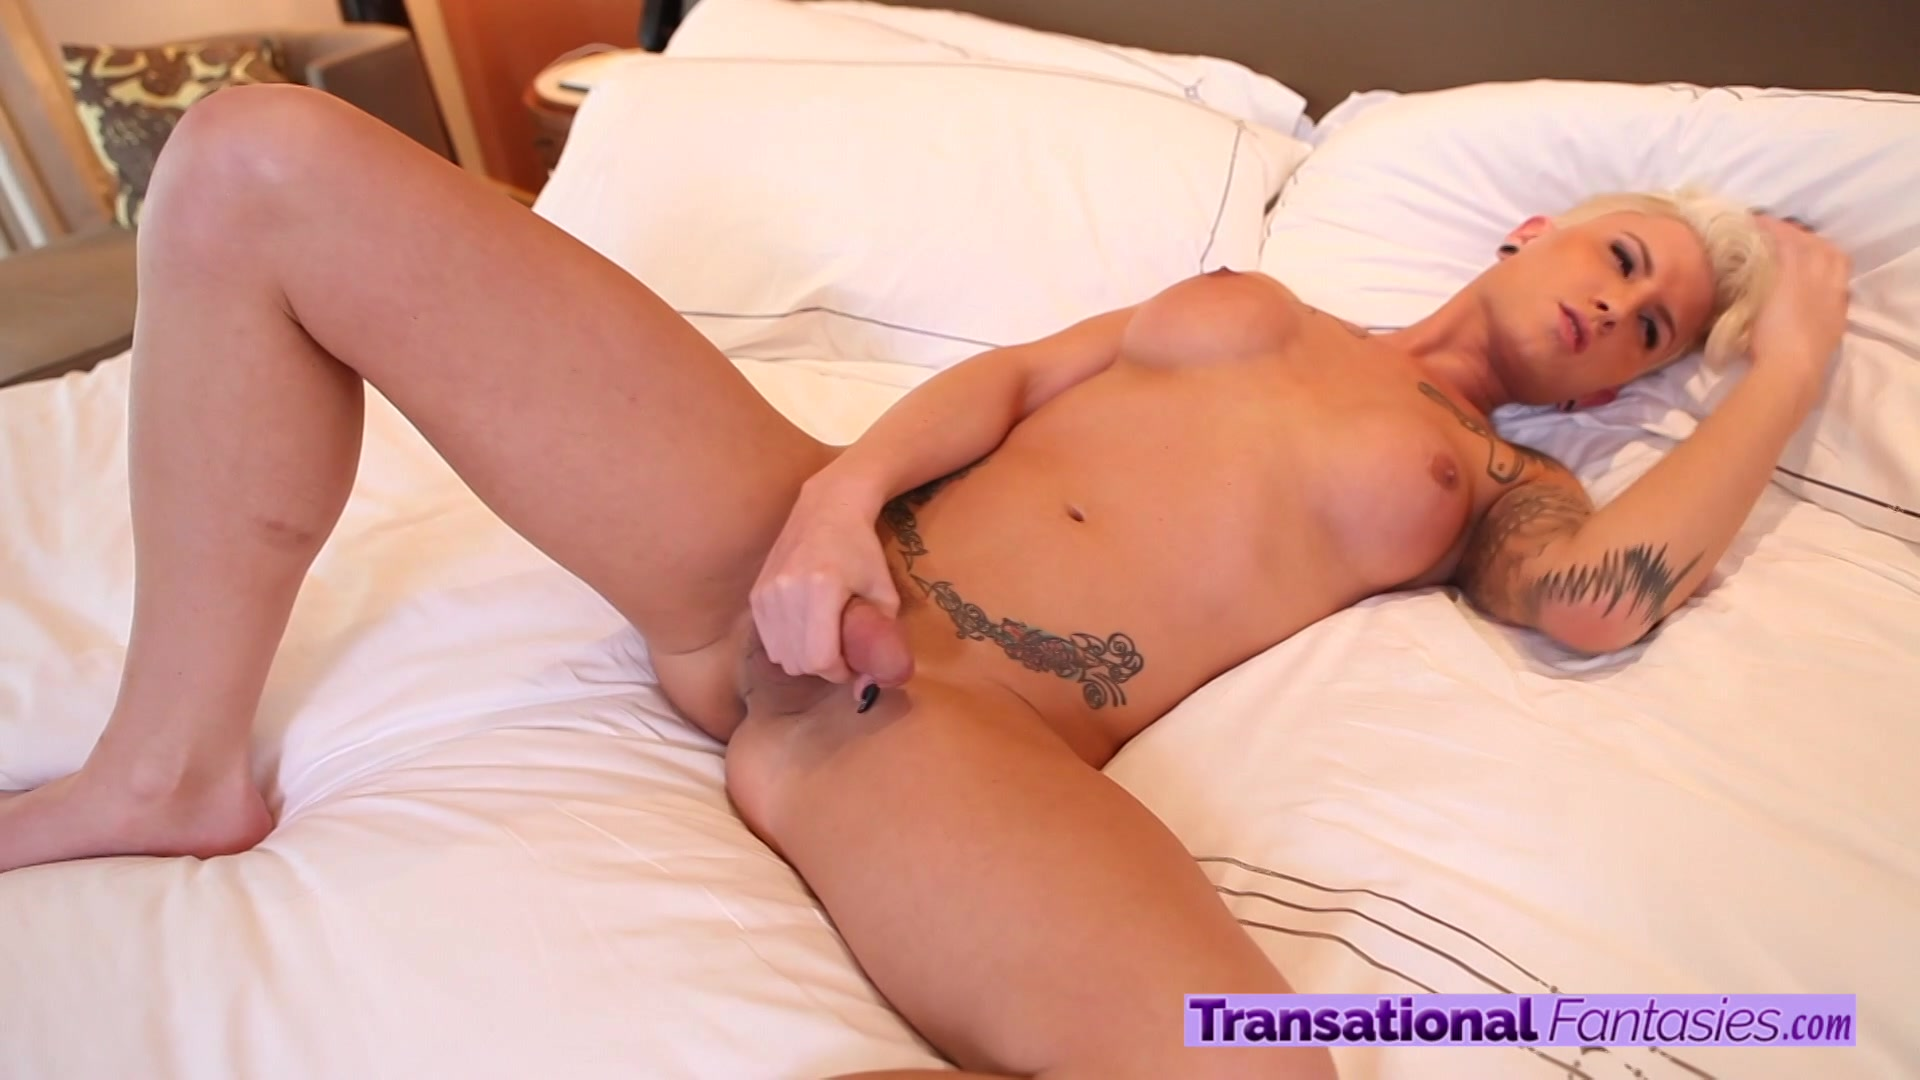 Watch White Tranny Danny Bendochy And Christian Doggystyle Sex